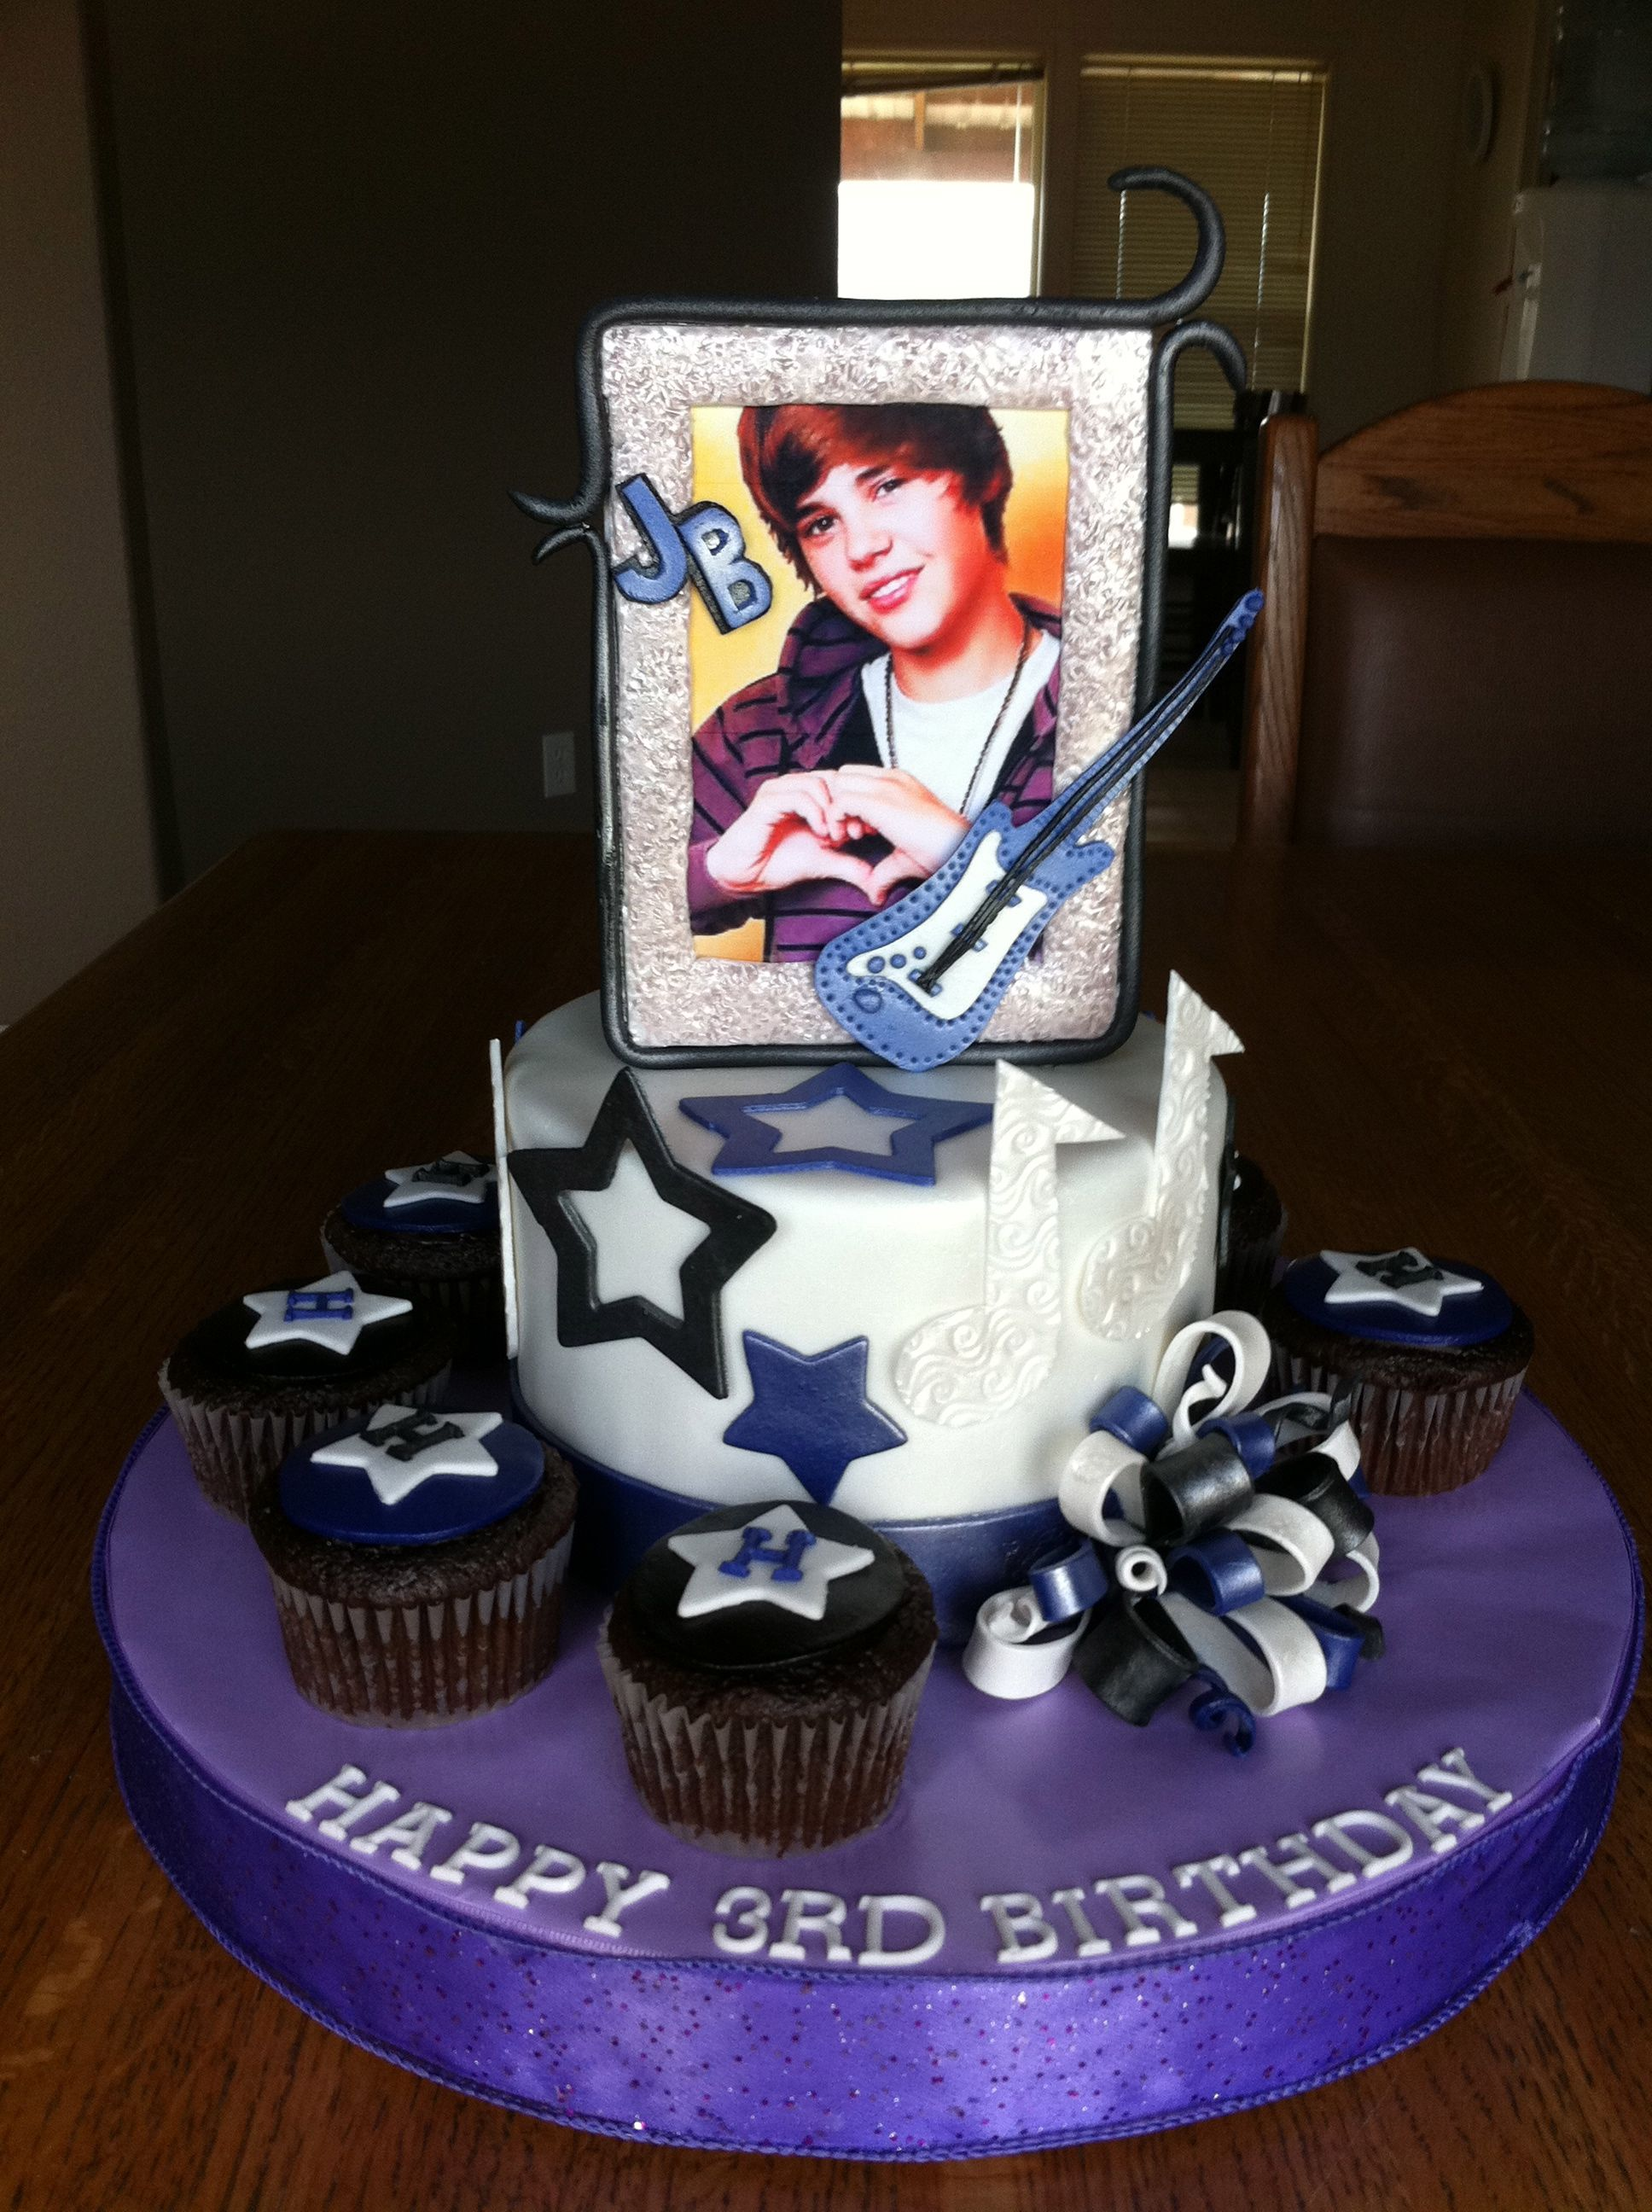 Justin Beiber cake, All handmade and edible except the picture.